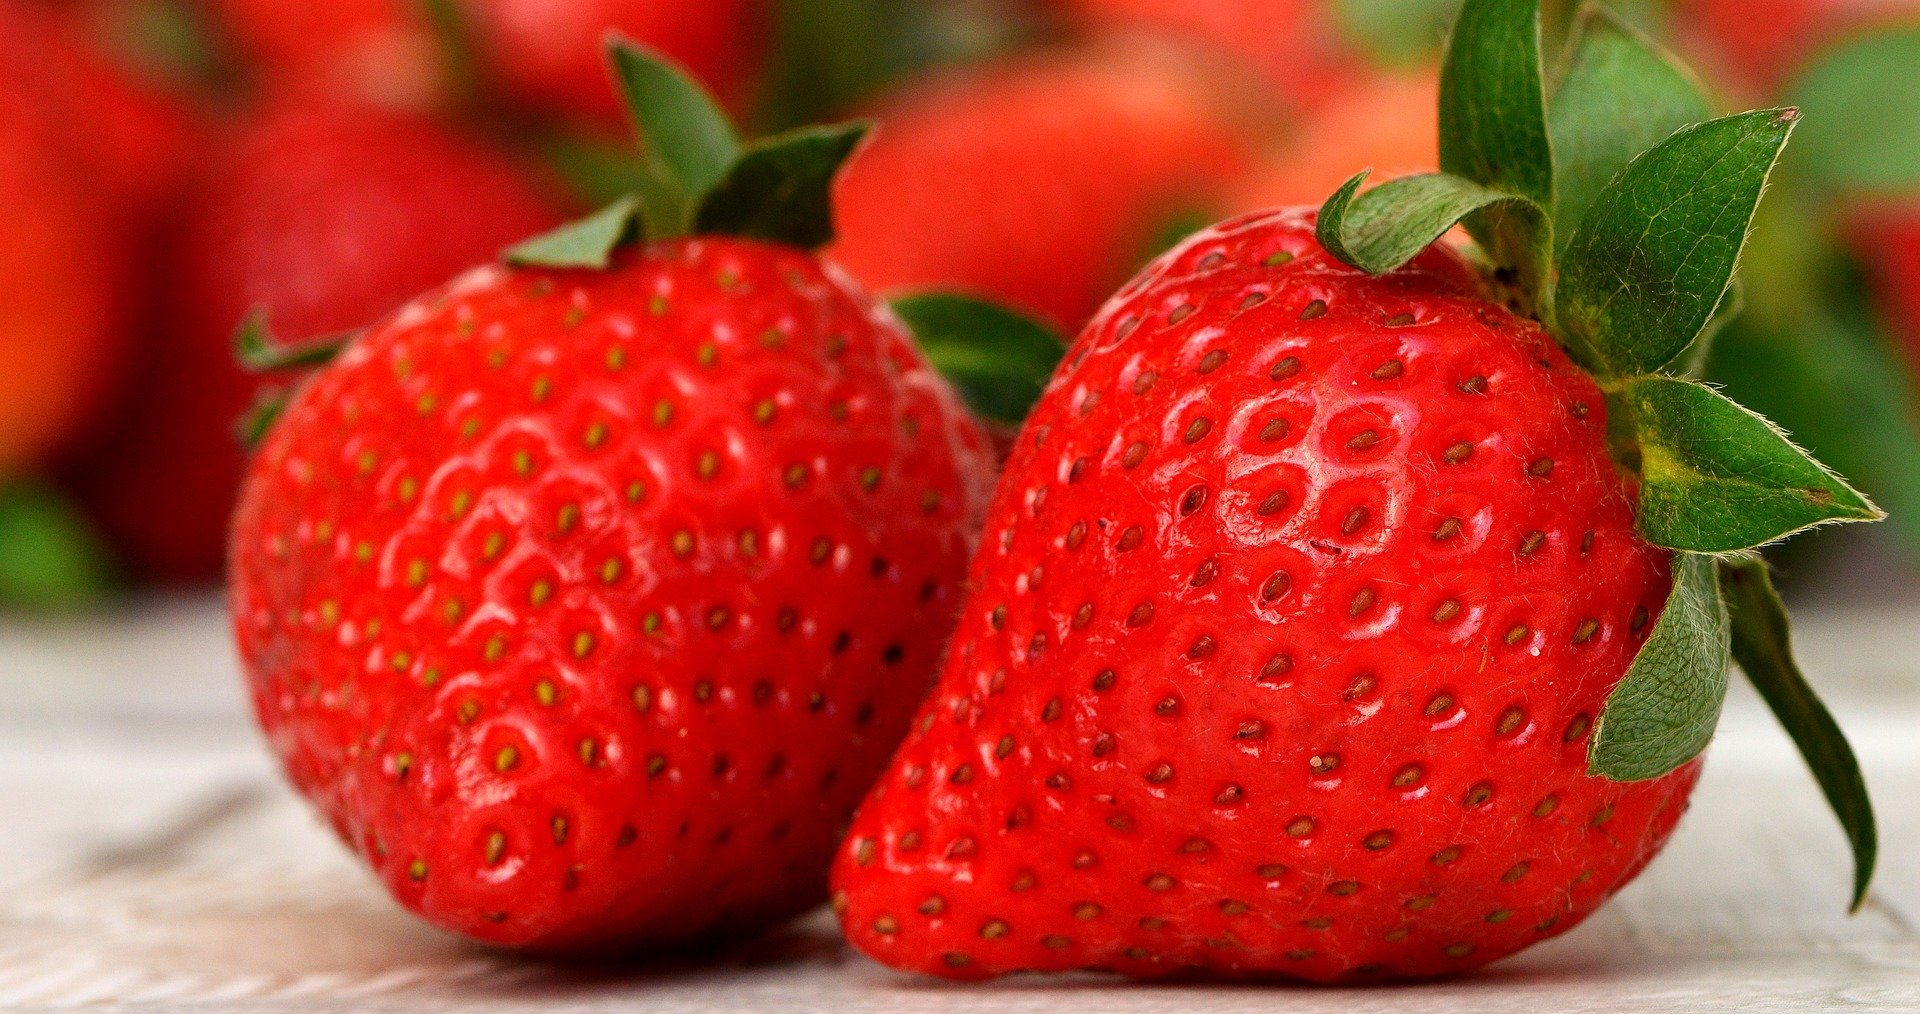 Strawberries have anti-inflammatory potential.